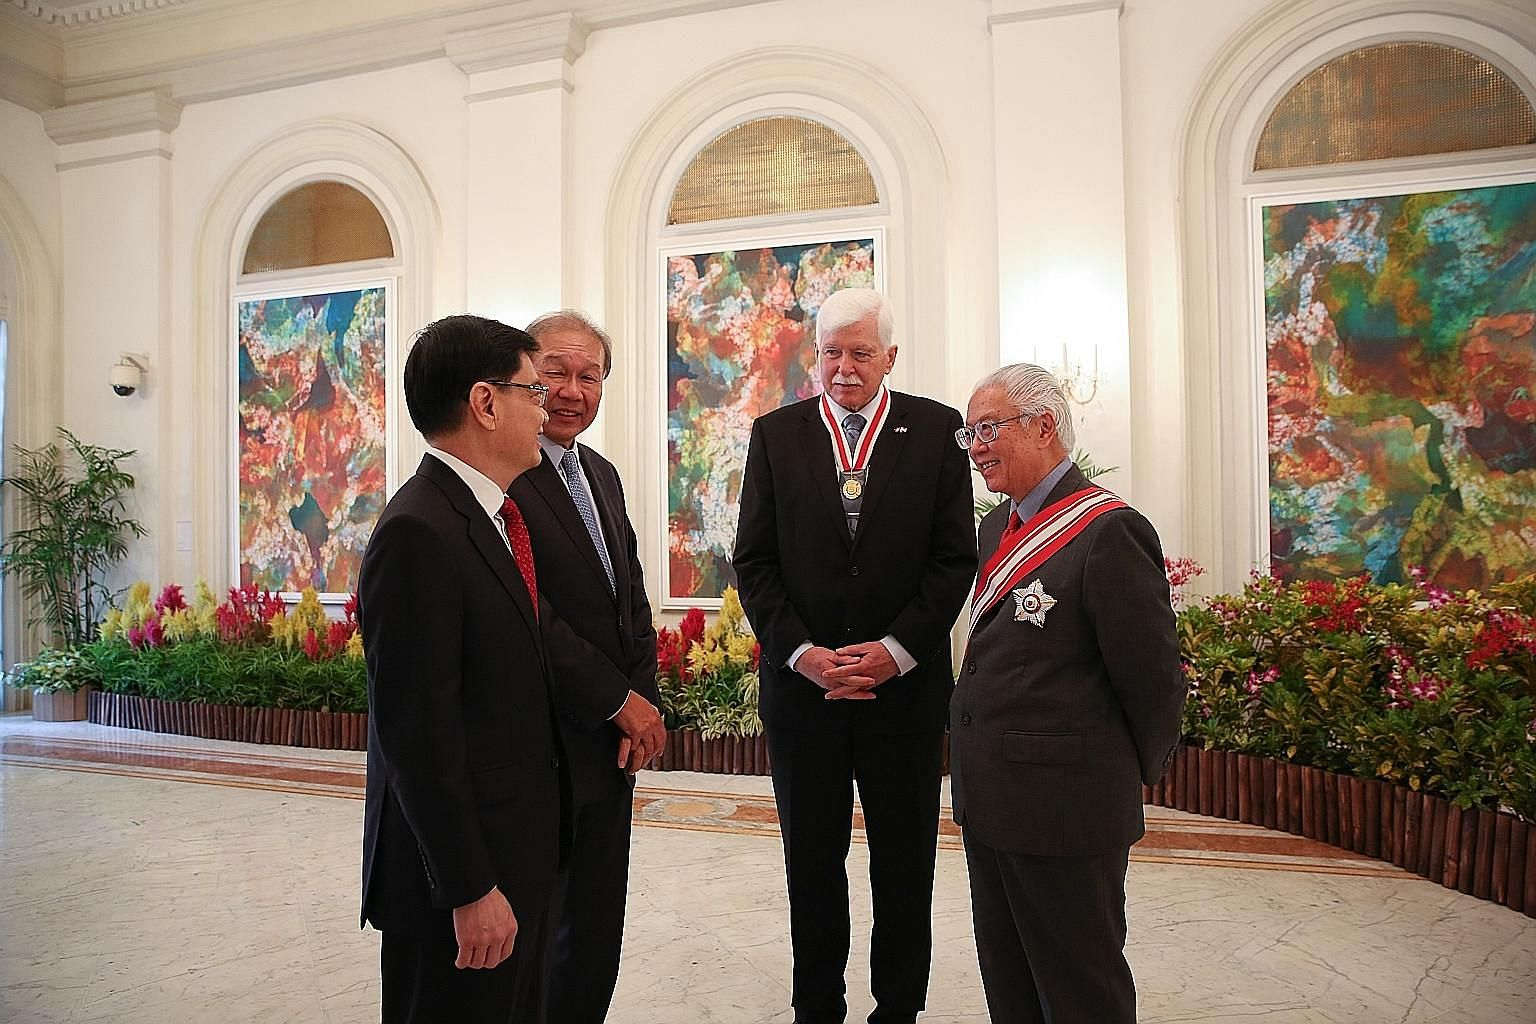 Emeritus Professor Ulrich Werner Suter (second from right) with President Tony Tan Keng Yam, Finance Minister Heng Swee Keat (far left) and NRF chief executive Low Teck Seng at the Istana. The Honorary Citizen Award is the highest form of recognition